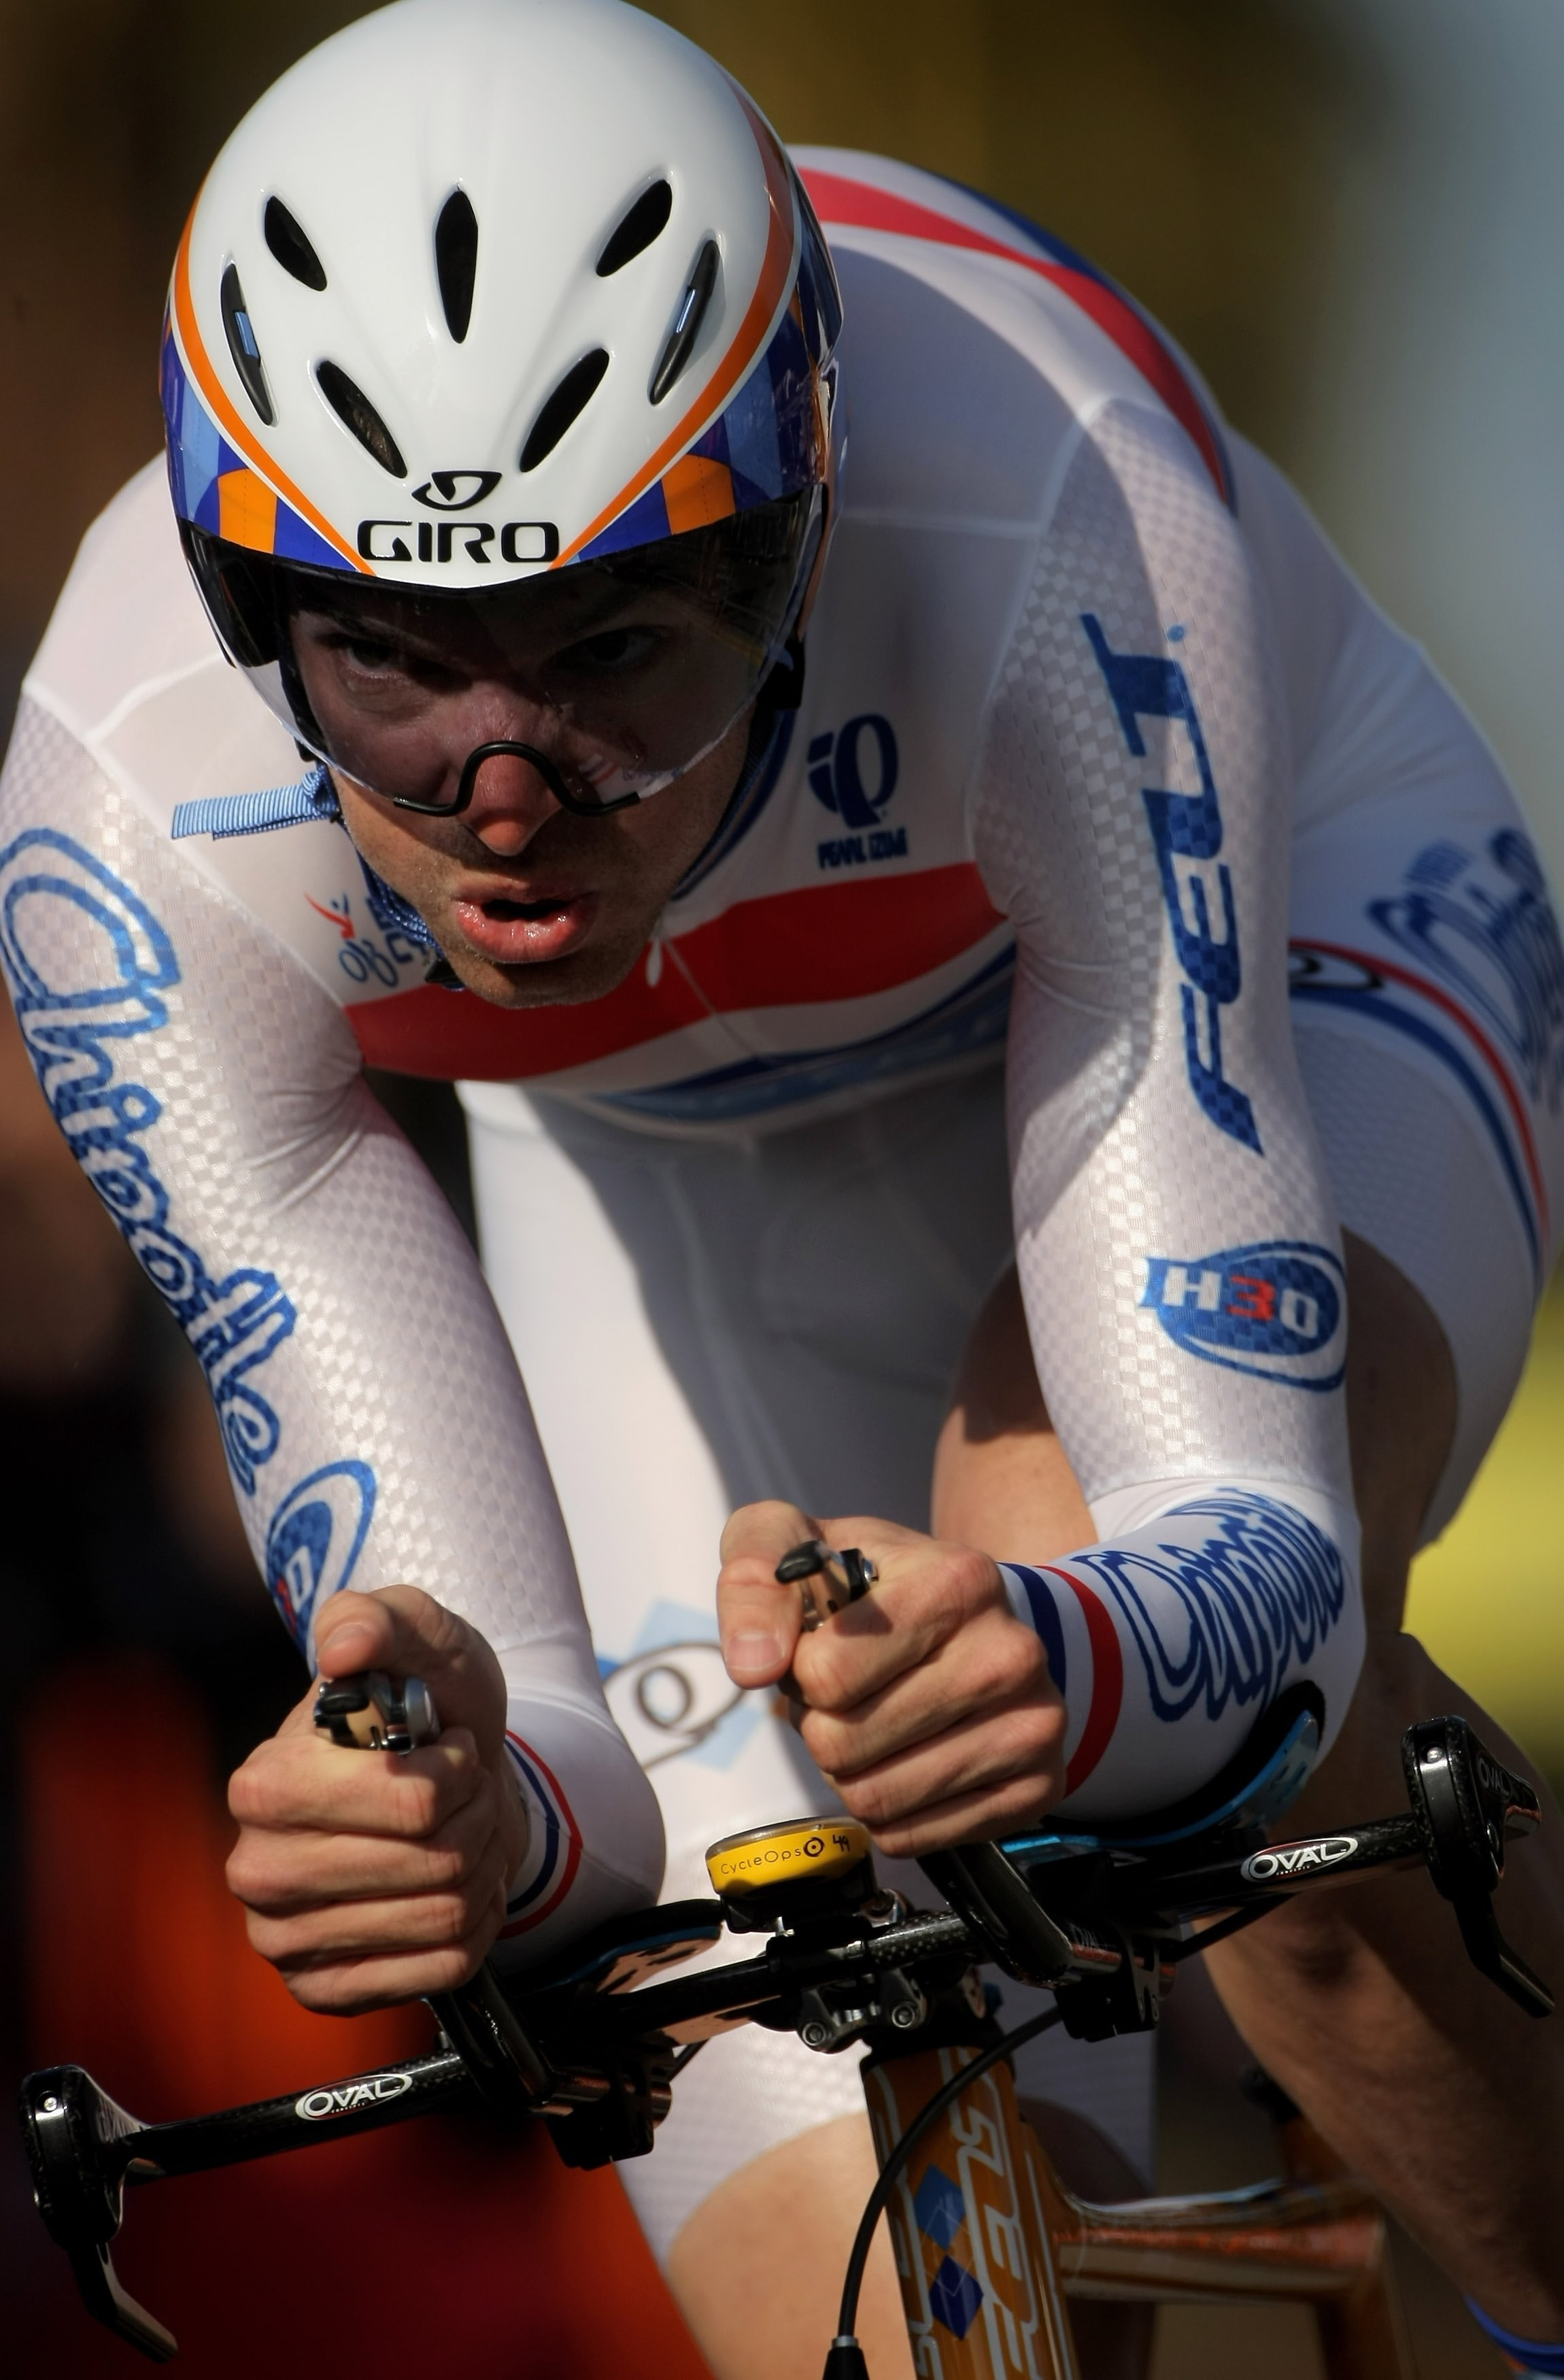 Millar is a master of time trials,races where focus and speed come together.